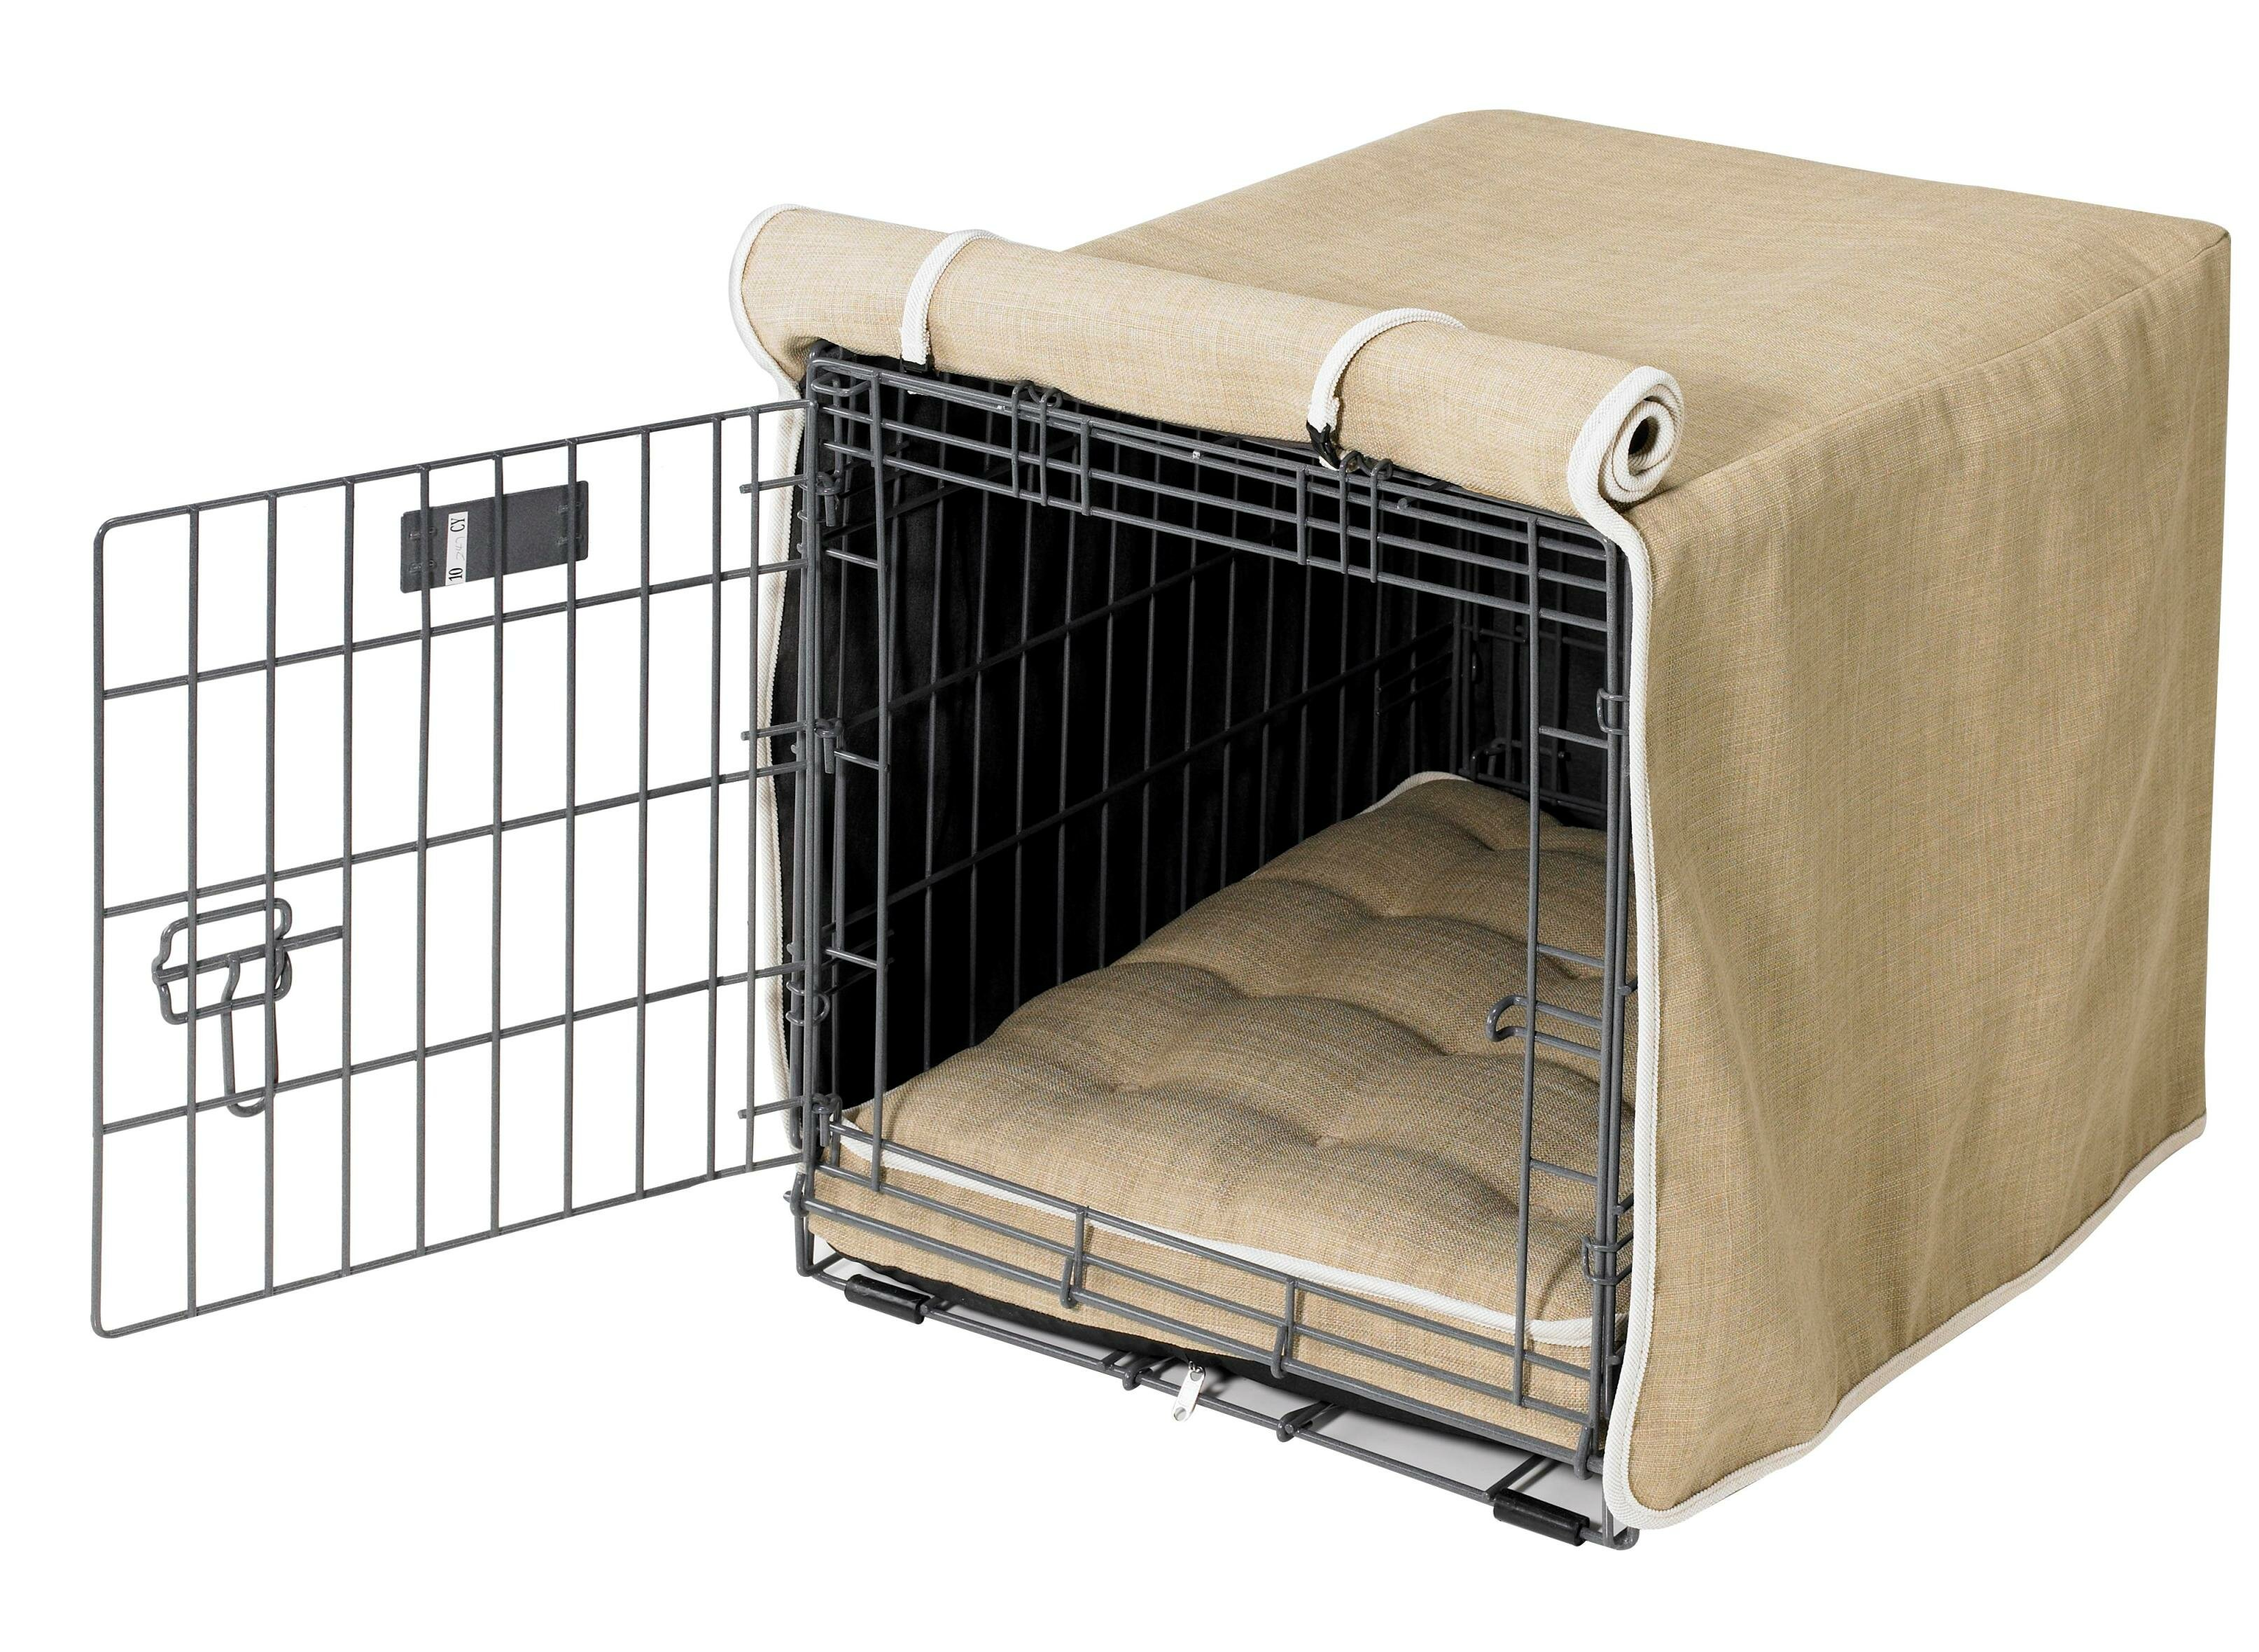 Bowsers Luxury Dog Crate Cover I & Reviews | Wayfair